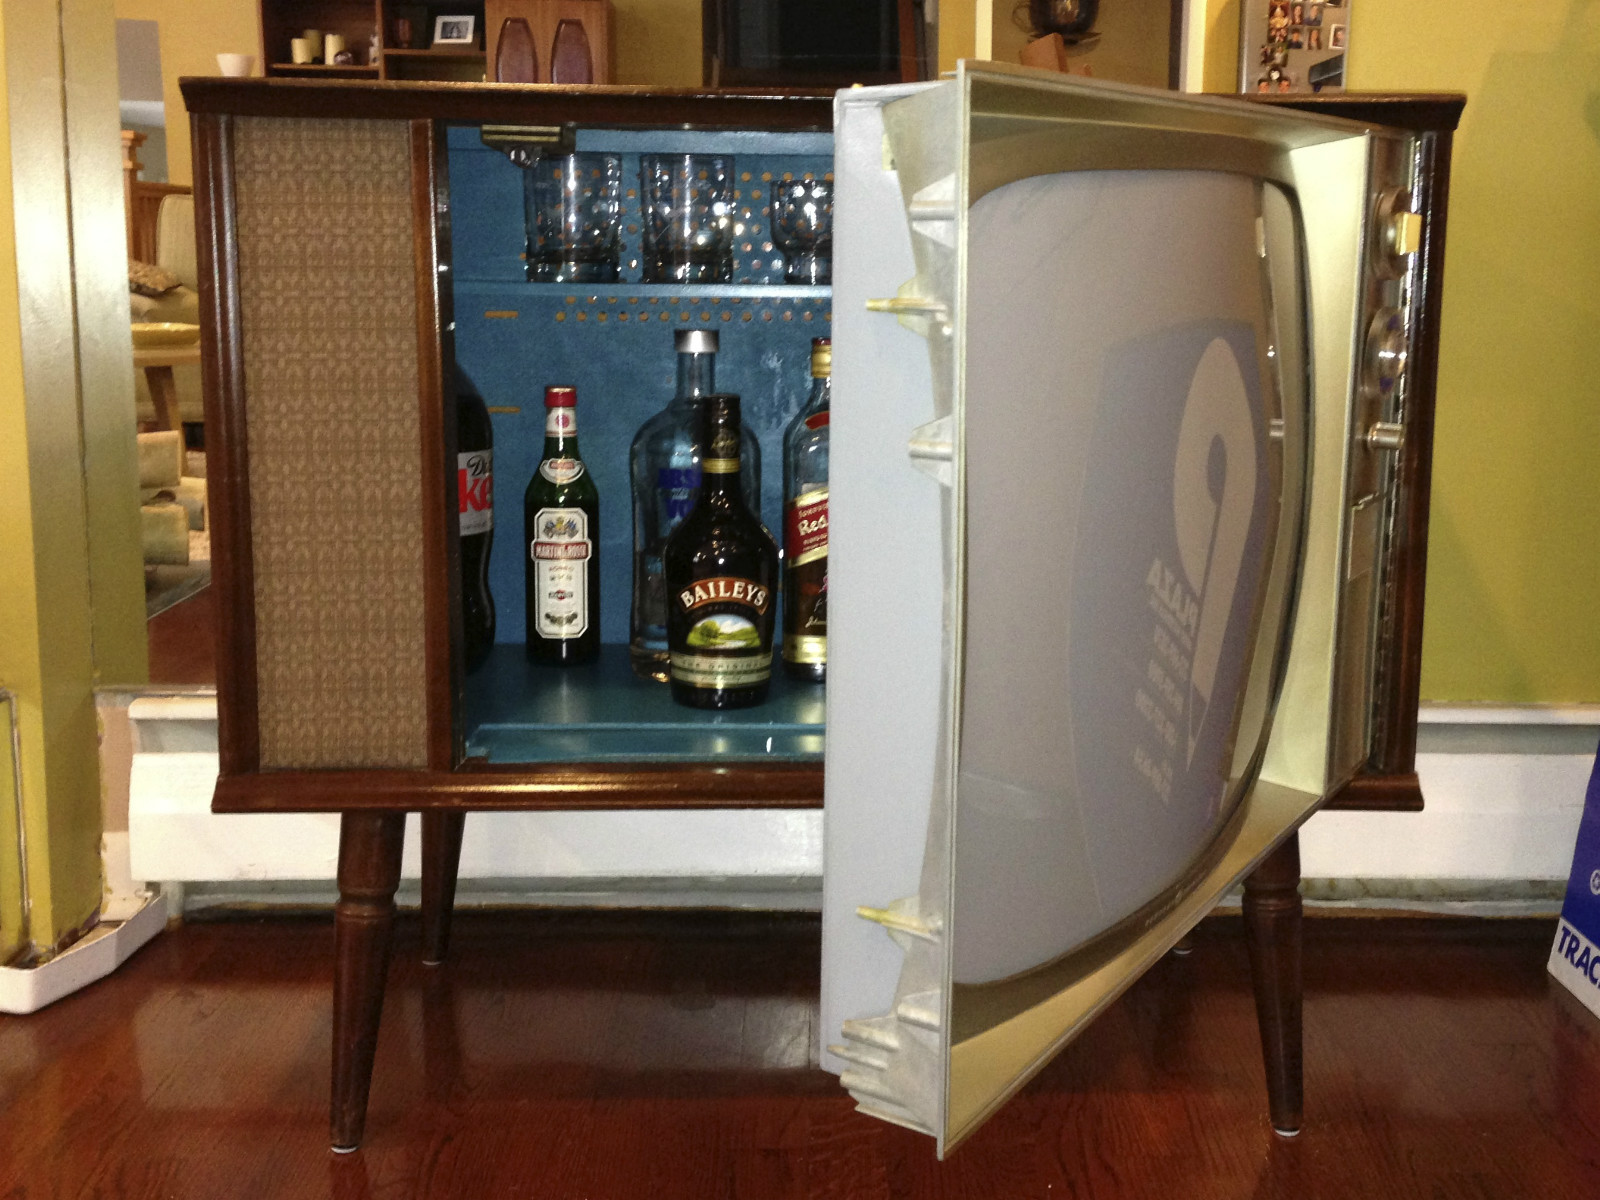 Vintage TV Hidden Cocktail Bar Liquor Cabinet | Liquor cabinet ...